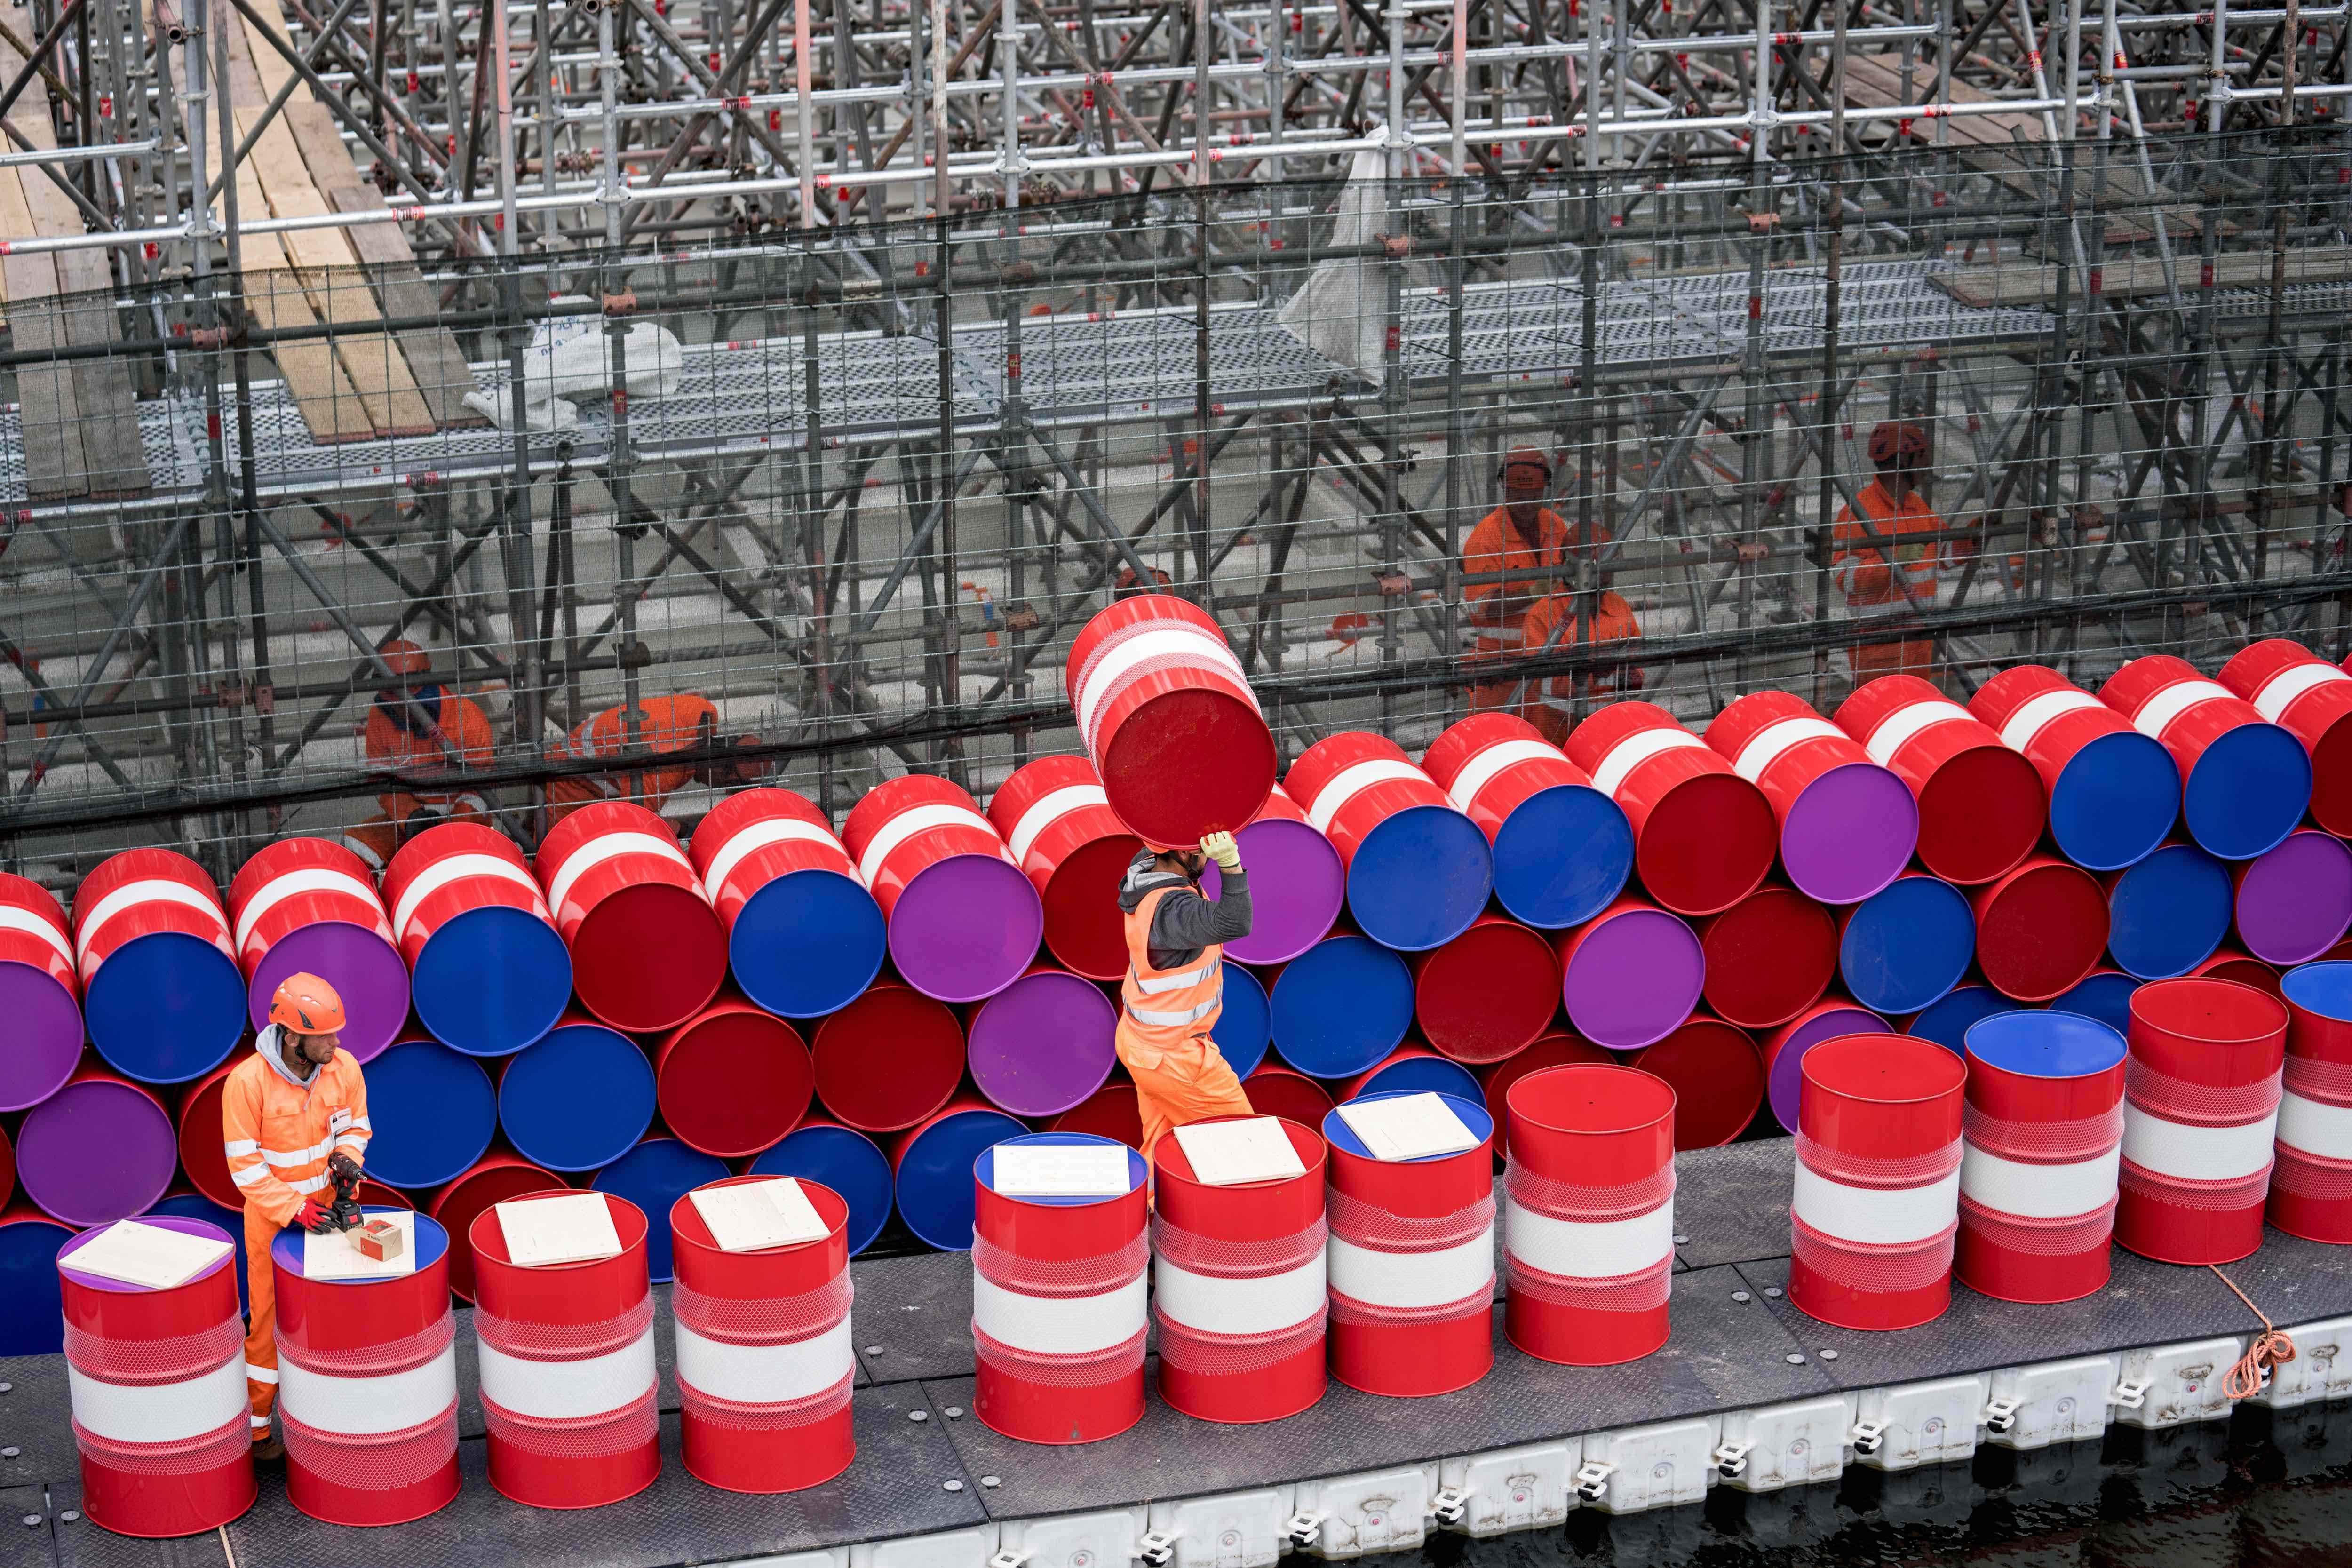 Workers installing barrels on the vertical side of the London Mastaba, May 2018, photo: Wolfgang Volz